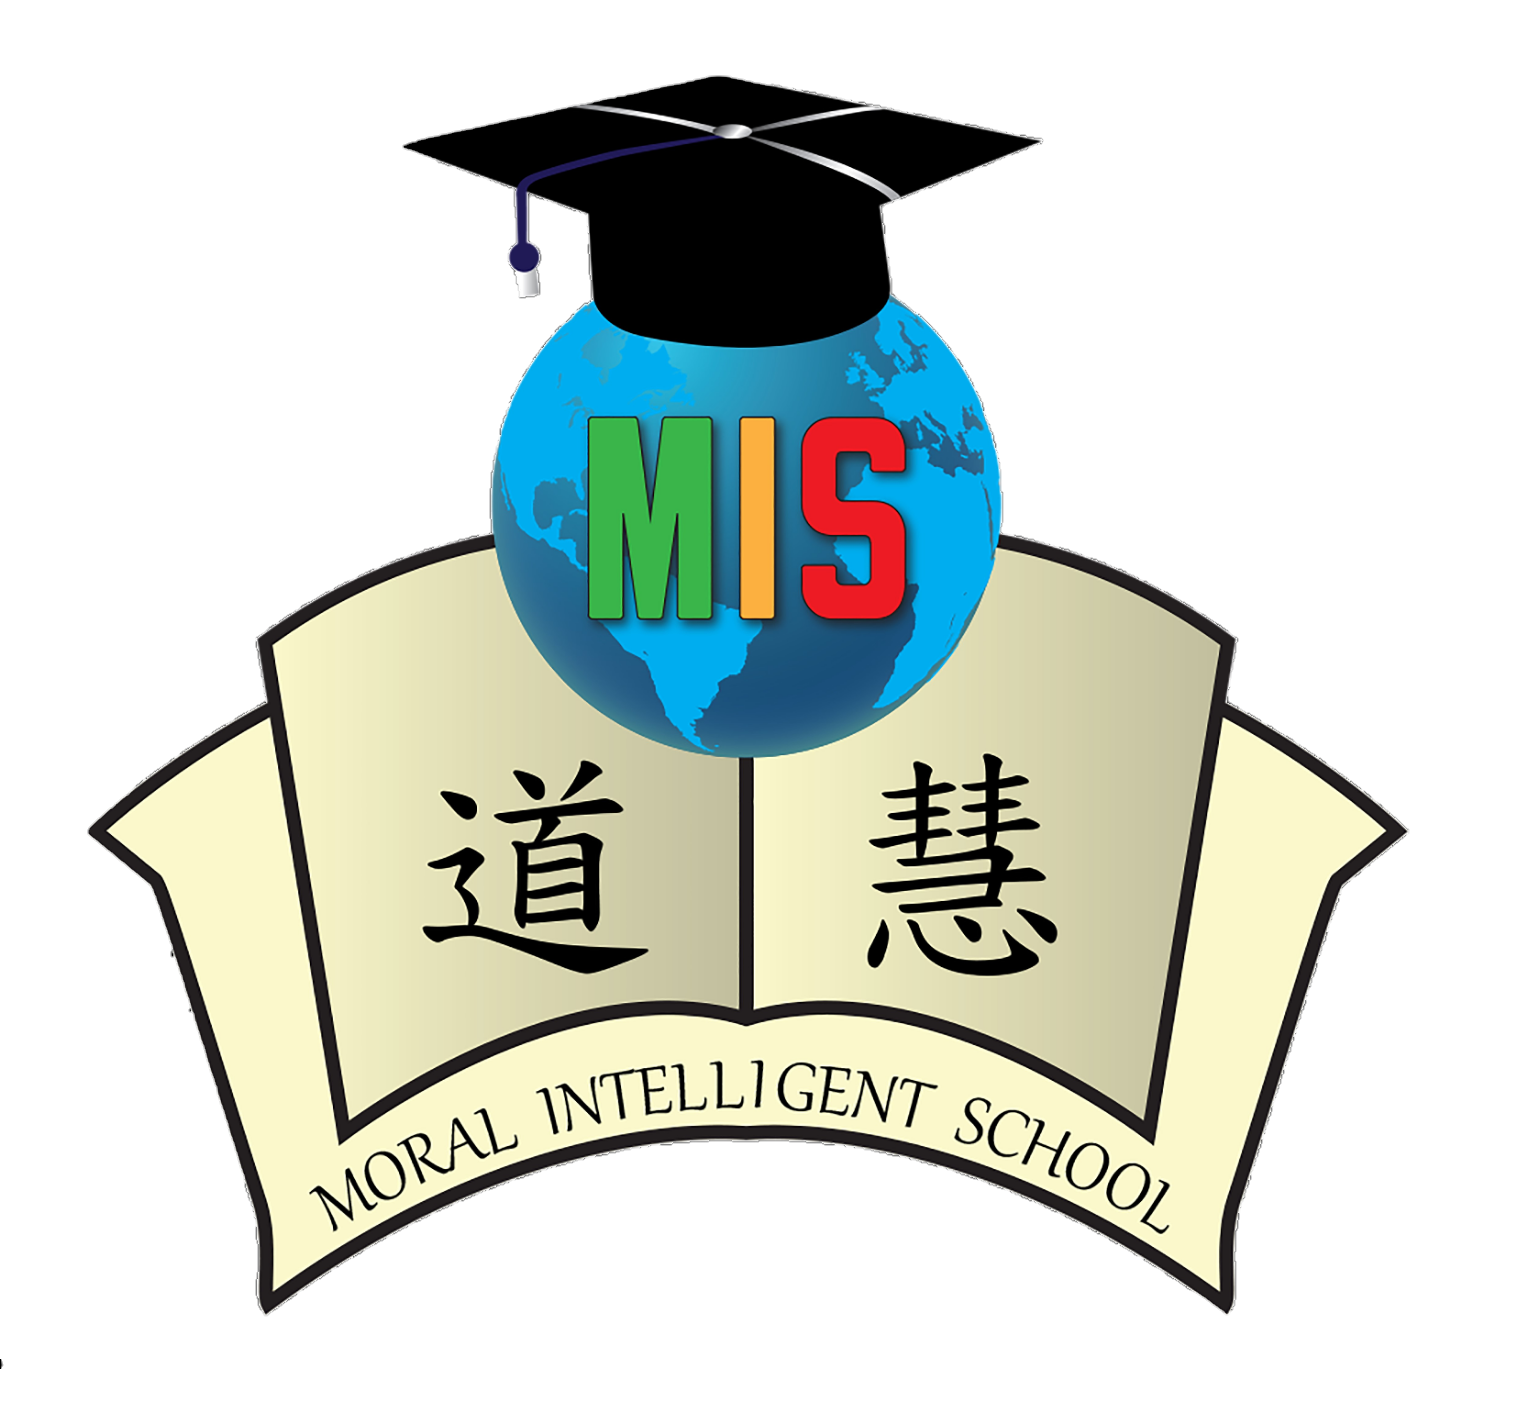 Logo Moral Intelligent School